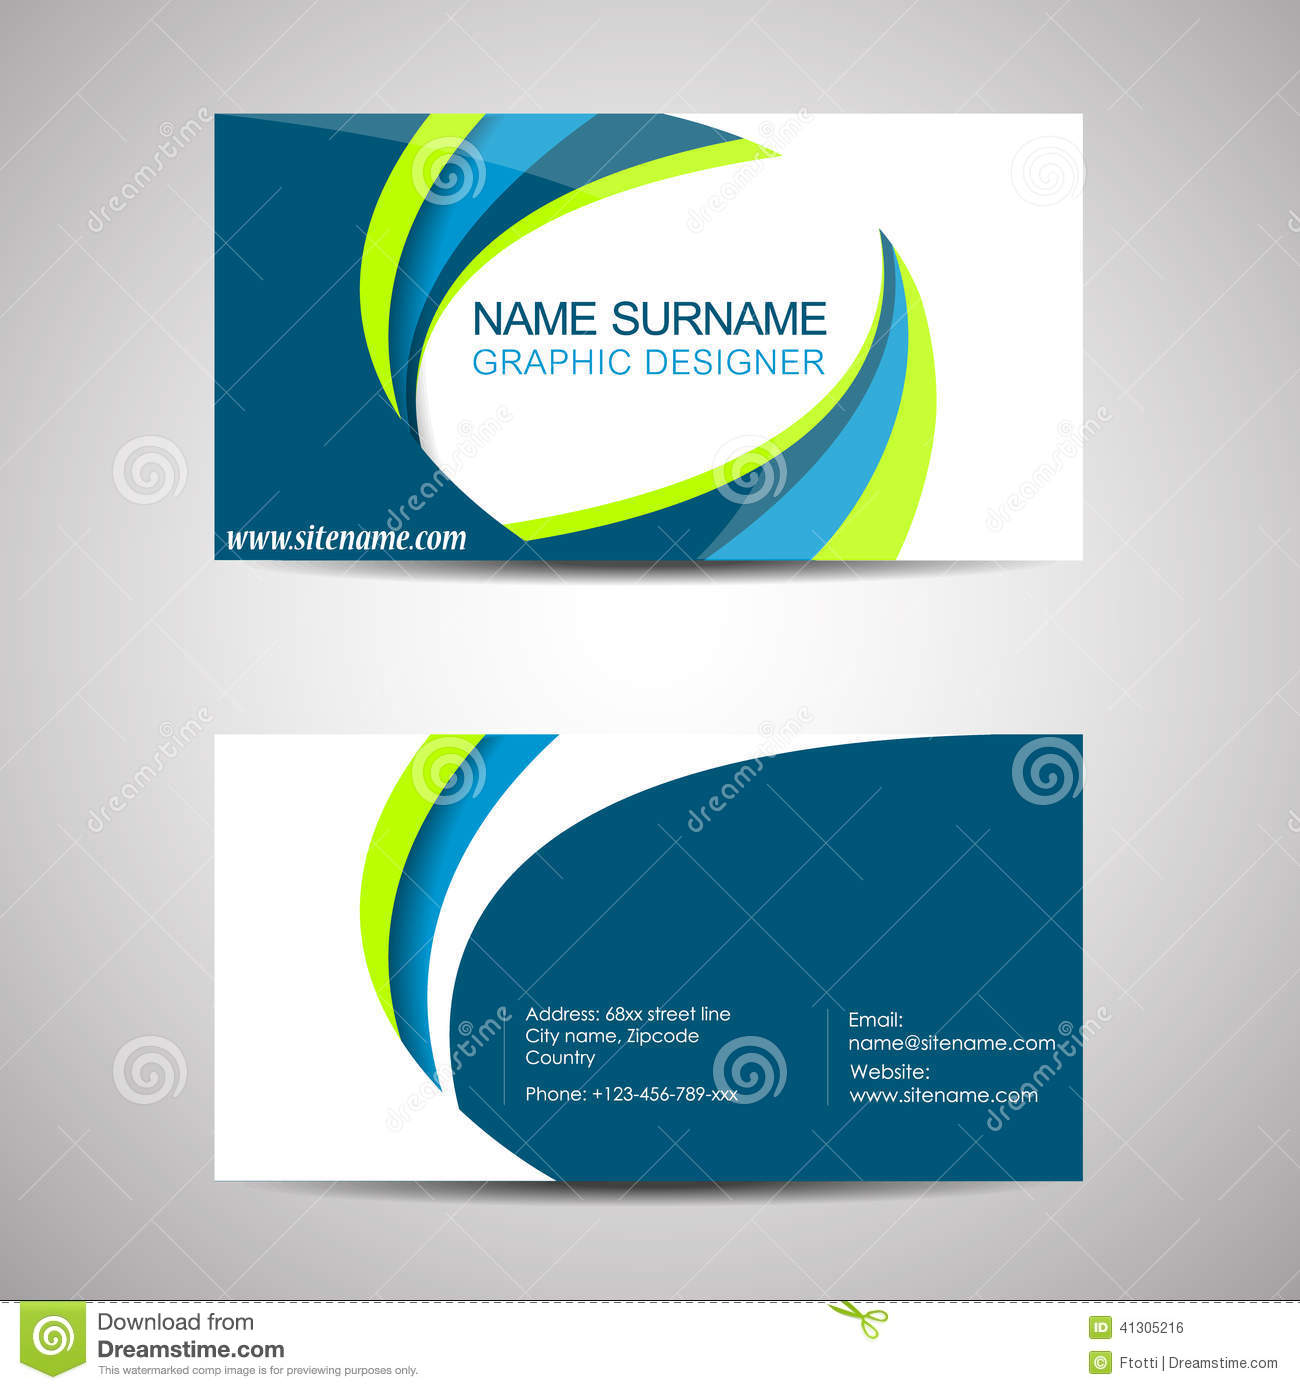 Business Card Template Or Visiting Card Stock Vector - Illustration ...